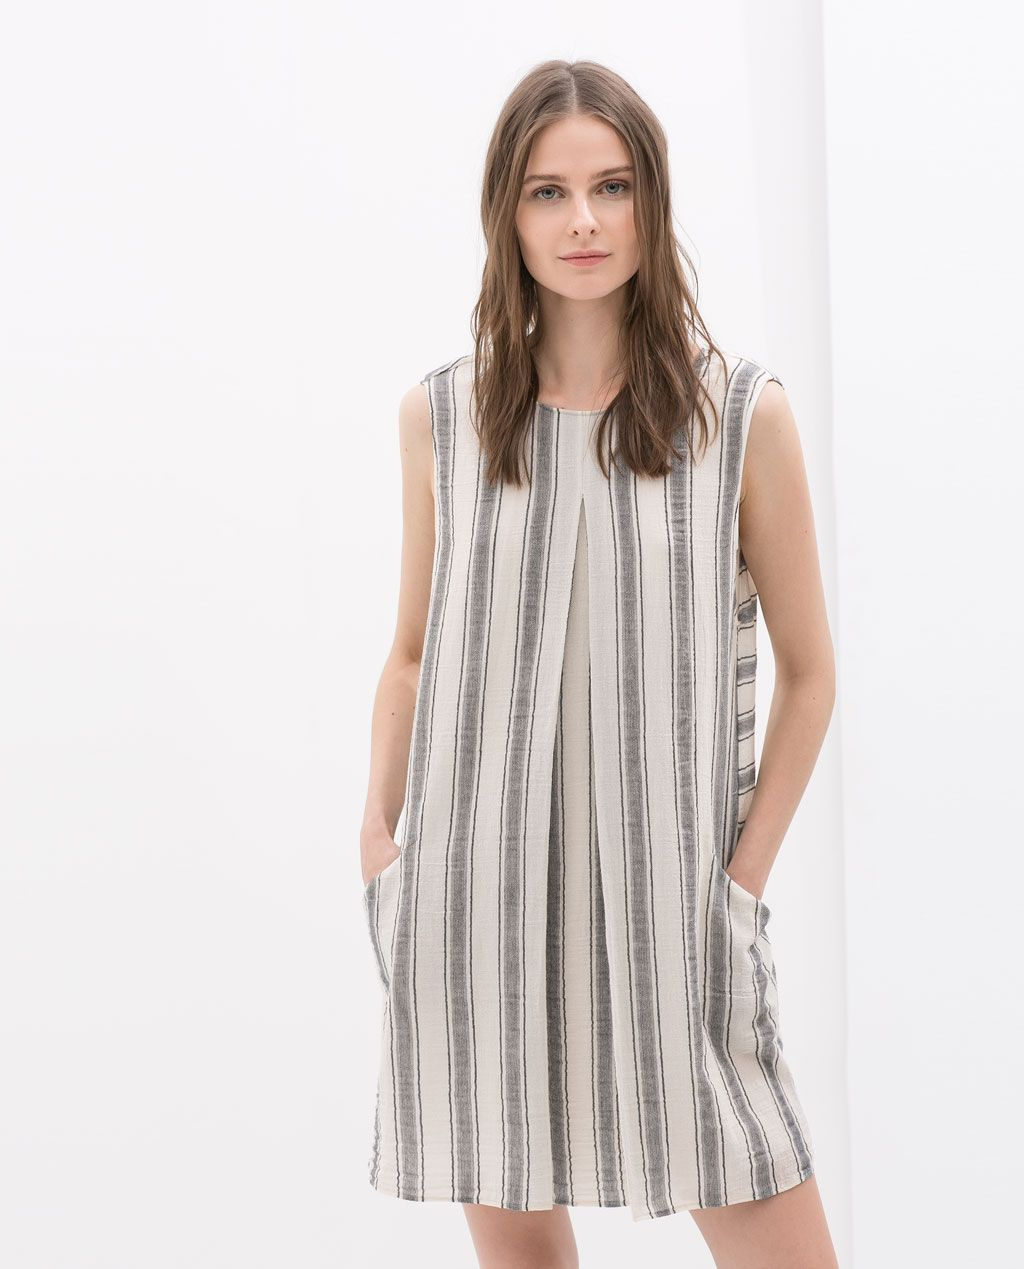 e8d2c29fc303 COMBINED STRIPED DRESS from Zara - Shift dress with set in pockets ...